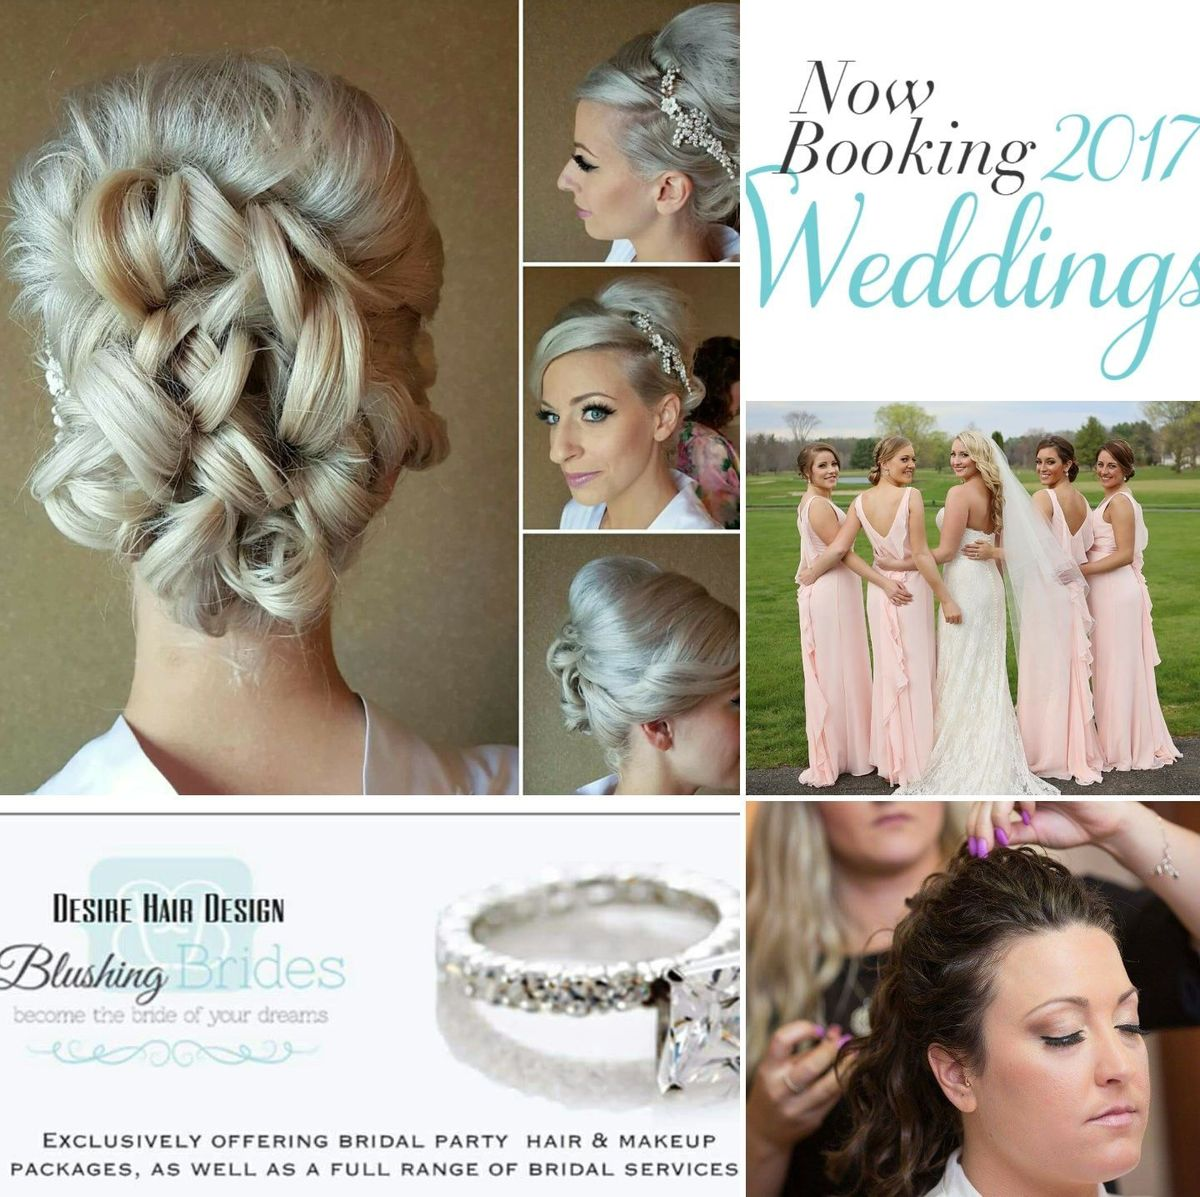 glens falls wedding hair & makeup - reviews for hair & makeup